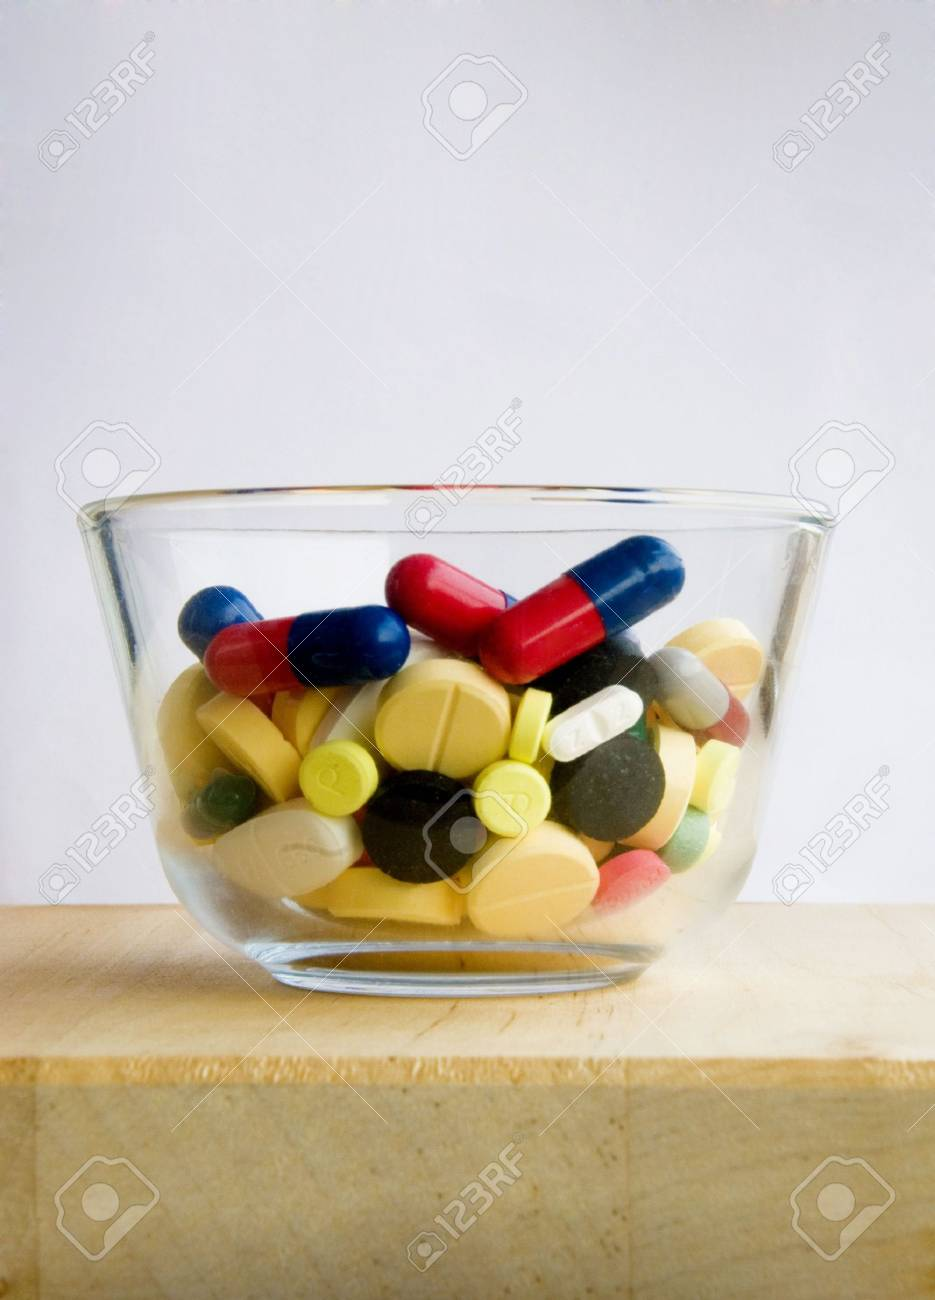 Glass filled fully with medication pills Stock Photo - 3268560